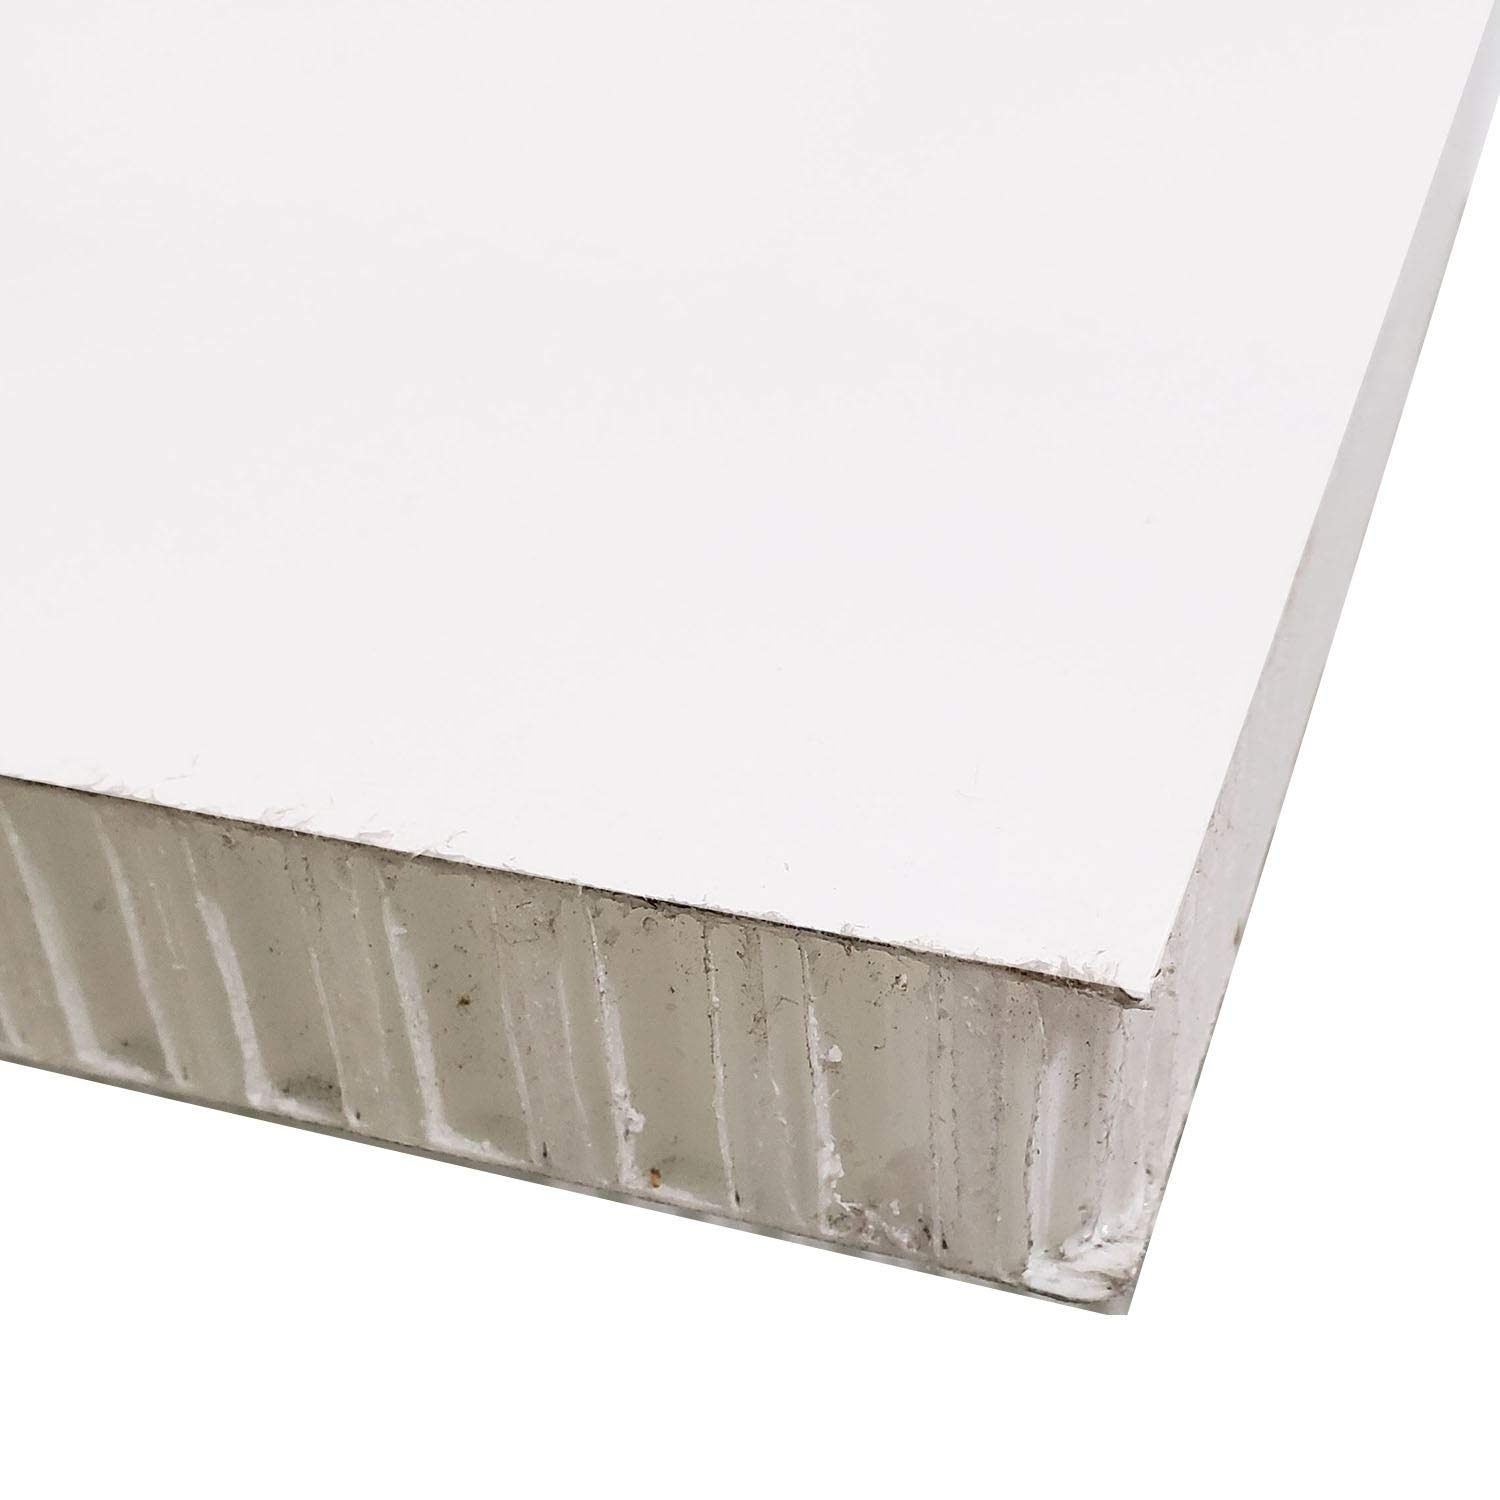 Online Metal Supply FRP Honeycomb Panel, 1.000'' (1'') x 24 inches x 48 inches, White by Online Metal Supply